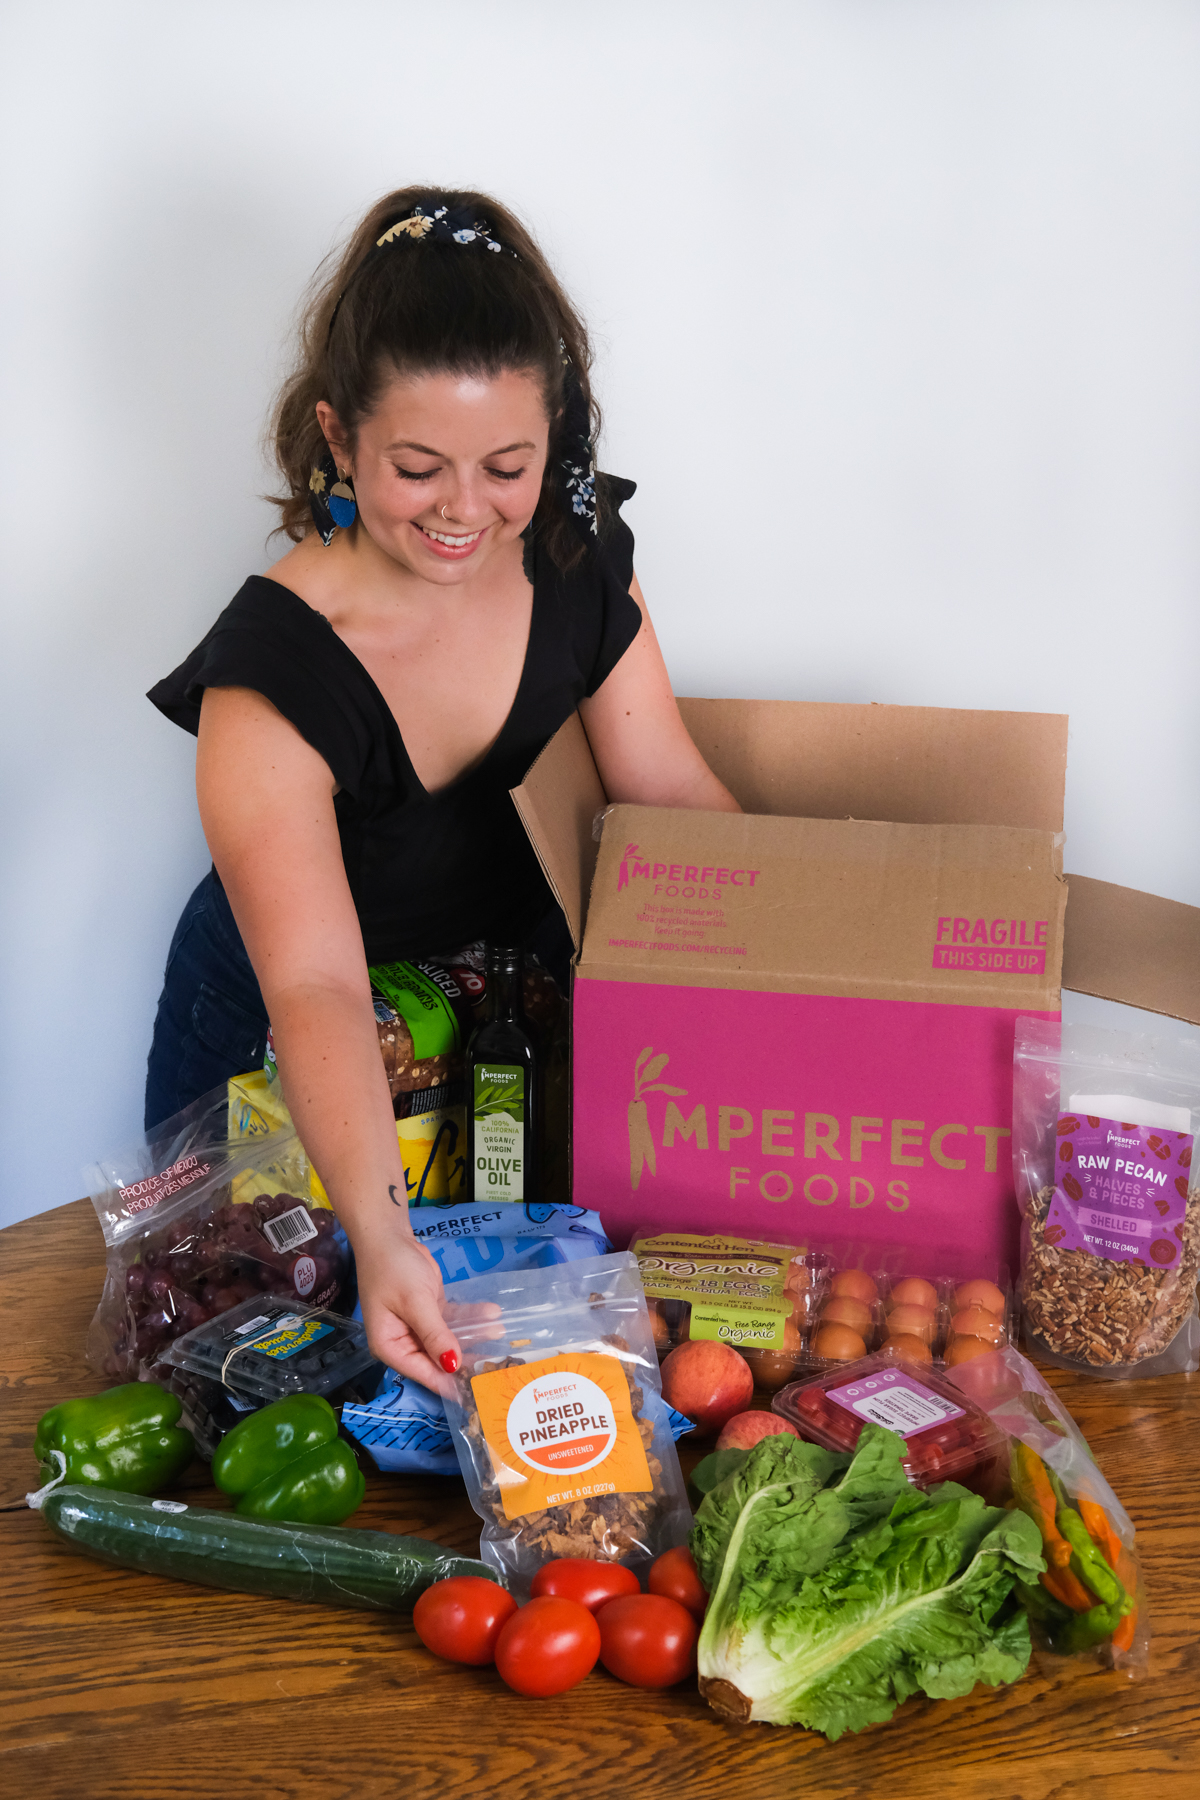 opening up a box of imperfect foods